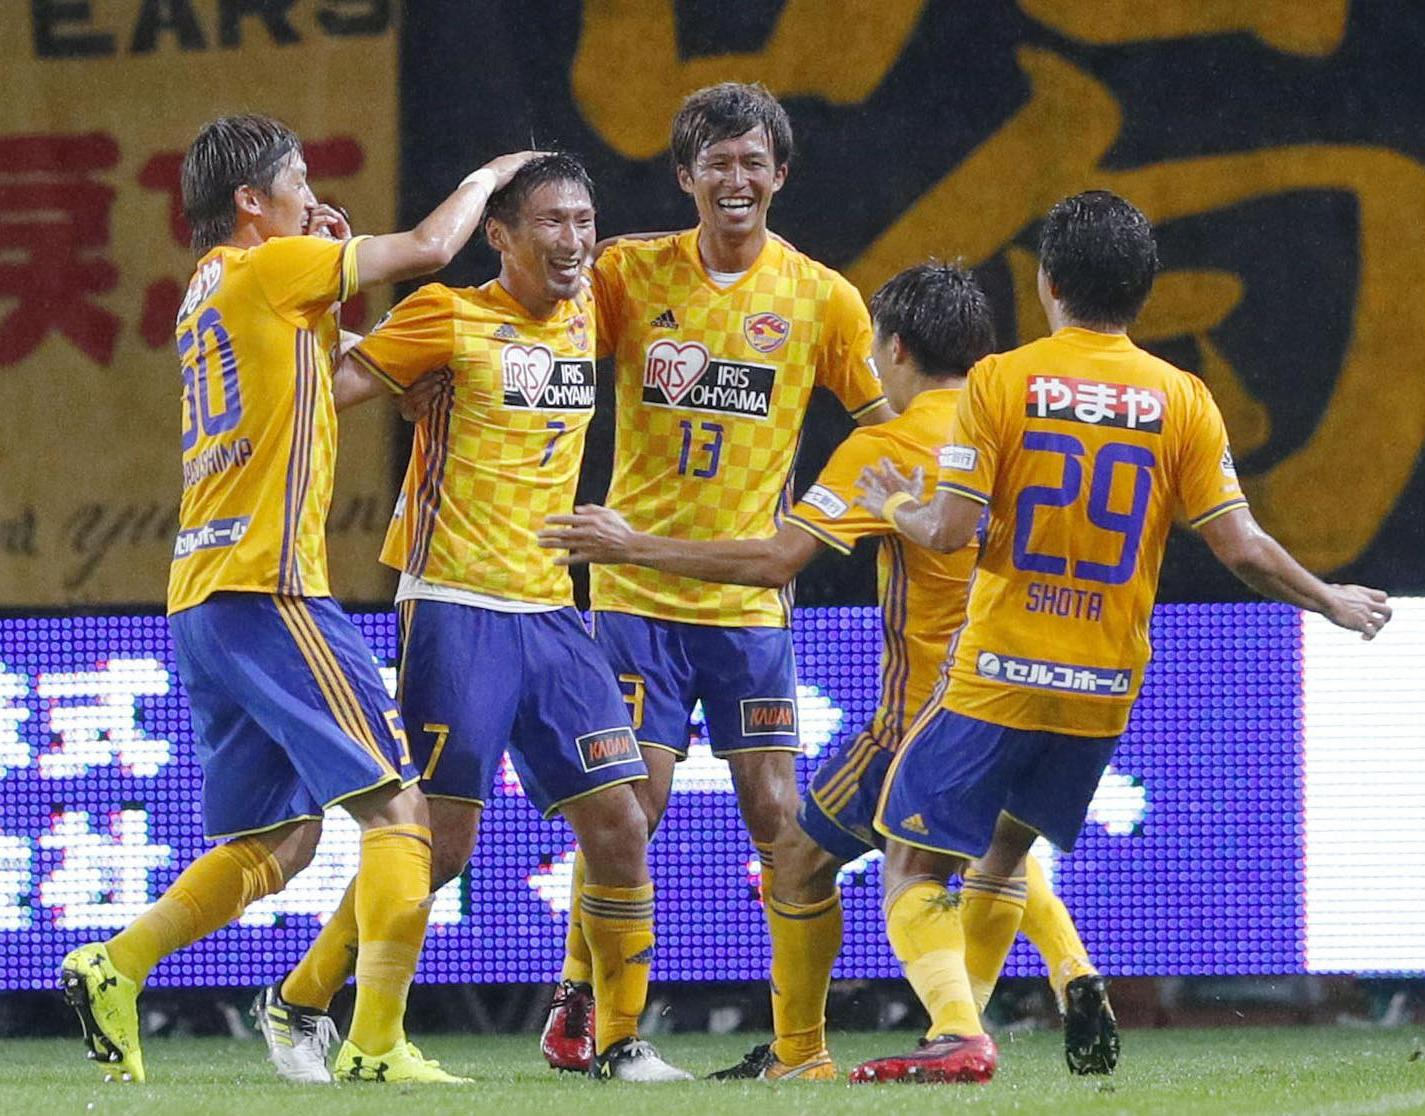 Vegalta's Hiroaki Okuno (7) celebrates with his teammates after scoring against Antlers during their Levain Cup match on Wednesday in Sendai. | KYODO